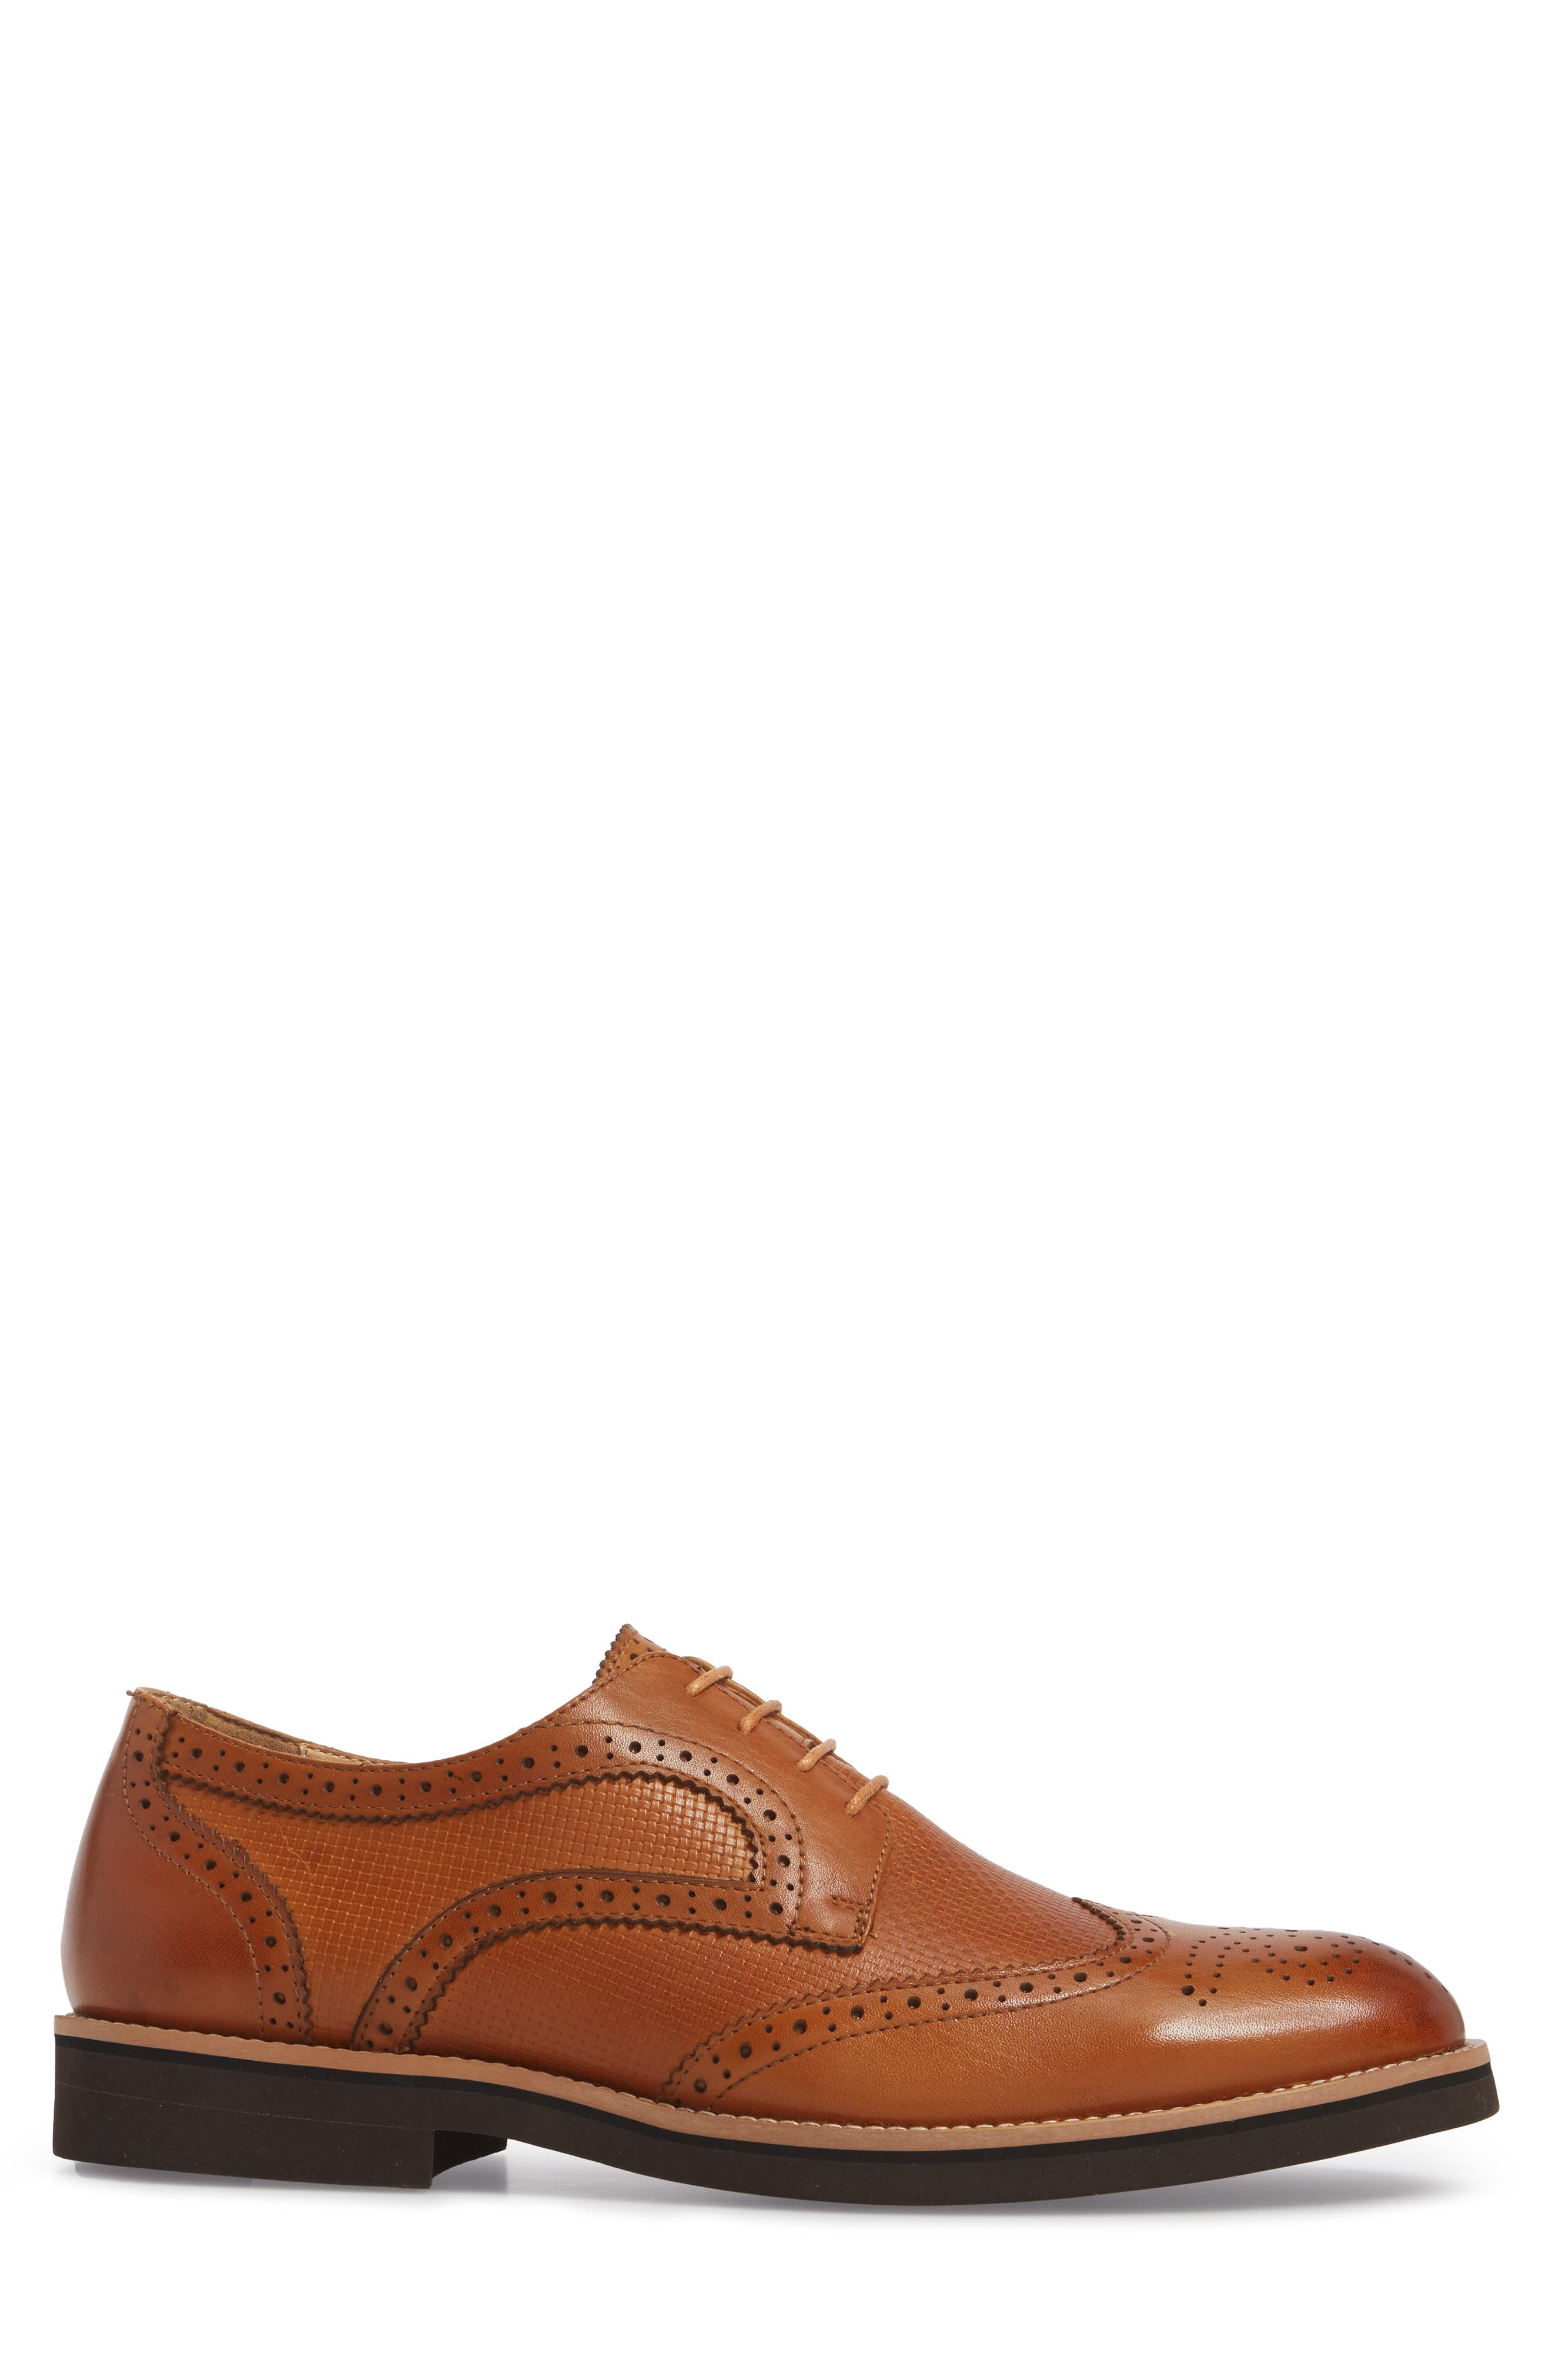 Cleave Embossed Wingtip,                             Alternate thumbnail 3, color,                             Cognac Leather